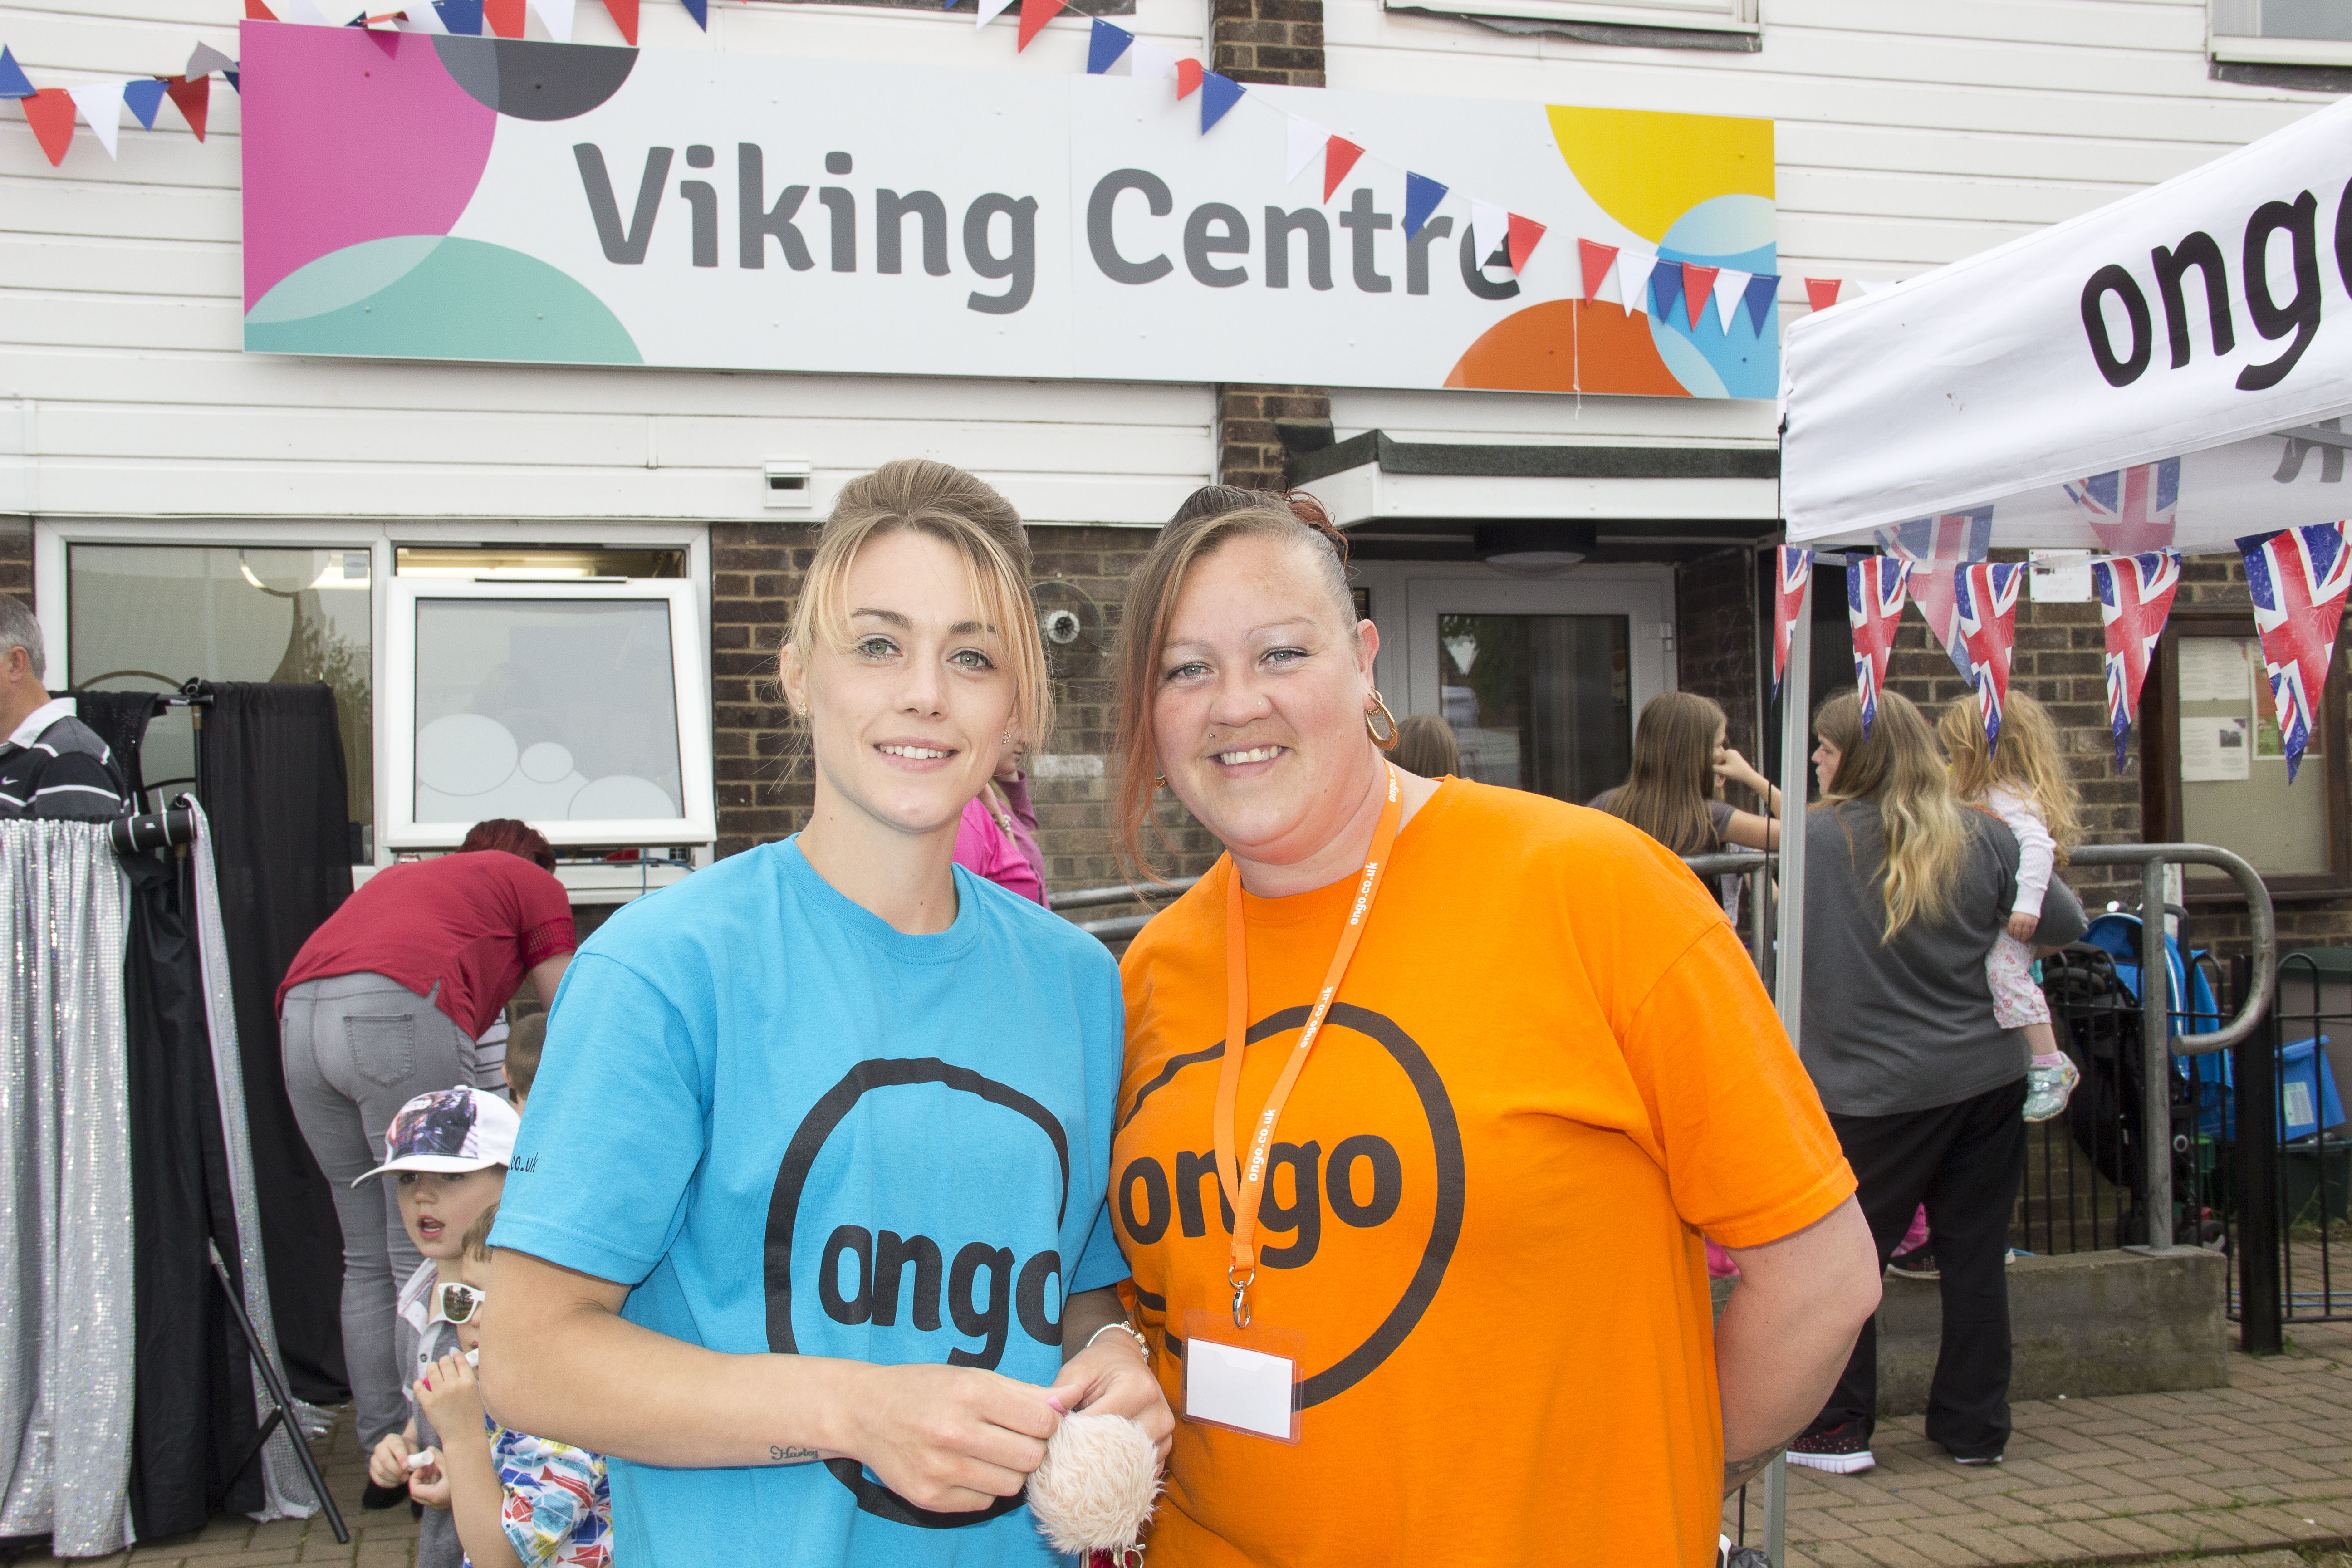 Viking centre Street Party- ladies in ongo tops.jpg